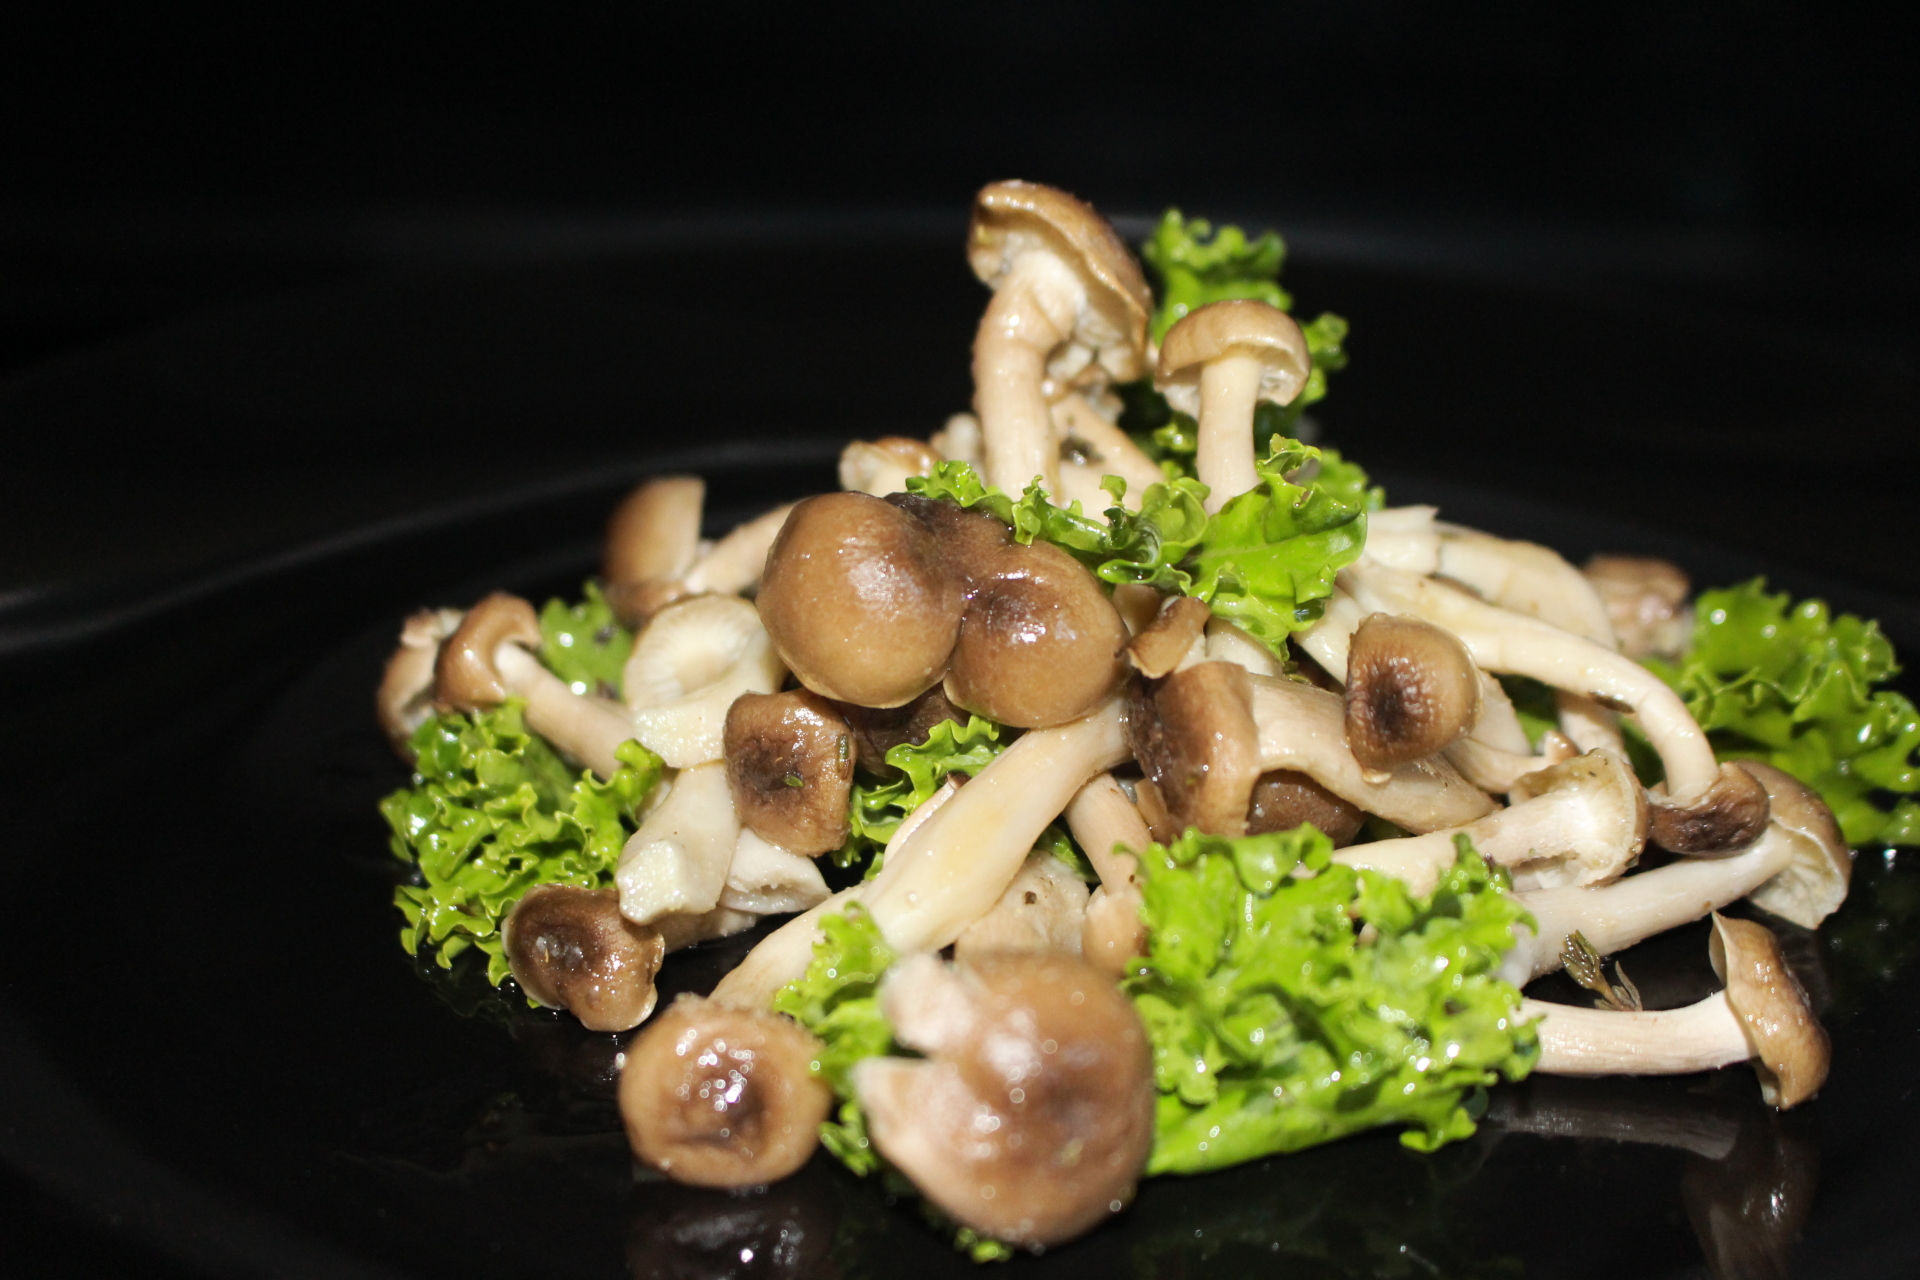 PK spiked Grilled Shitake Mushrooms